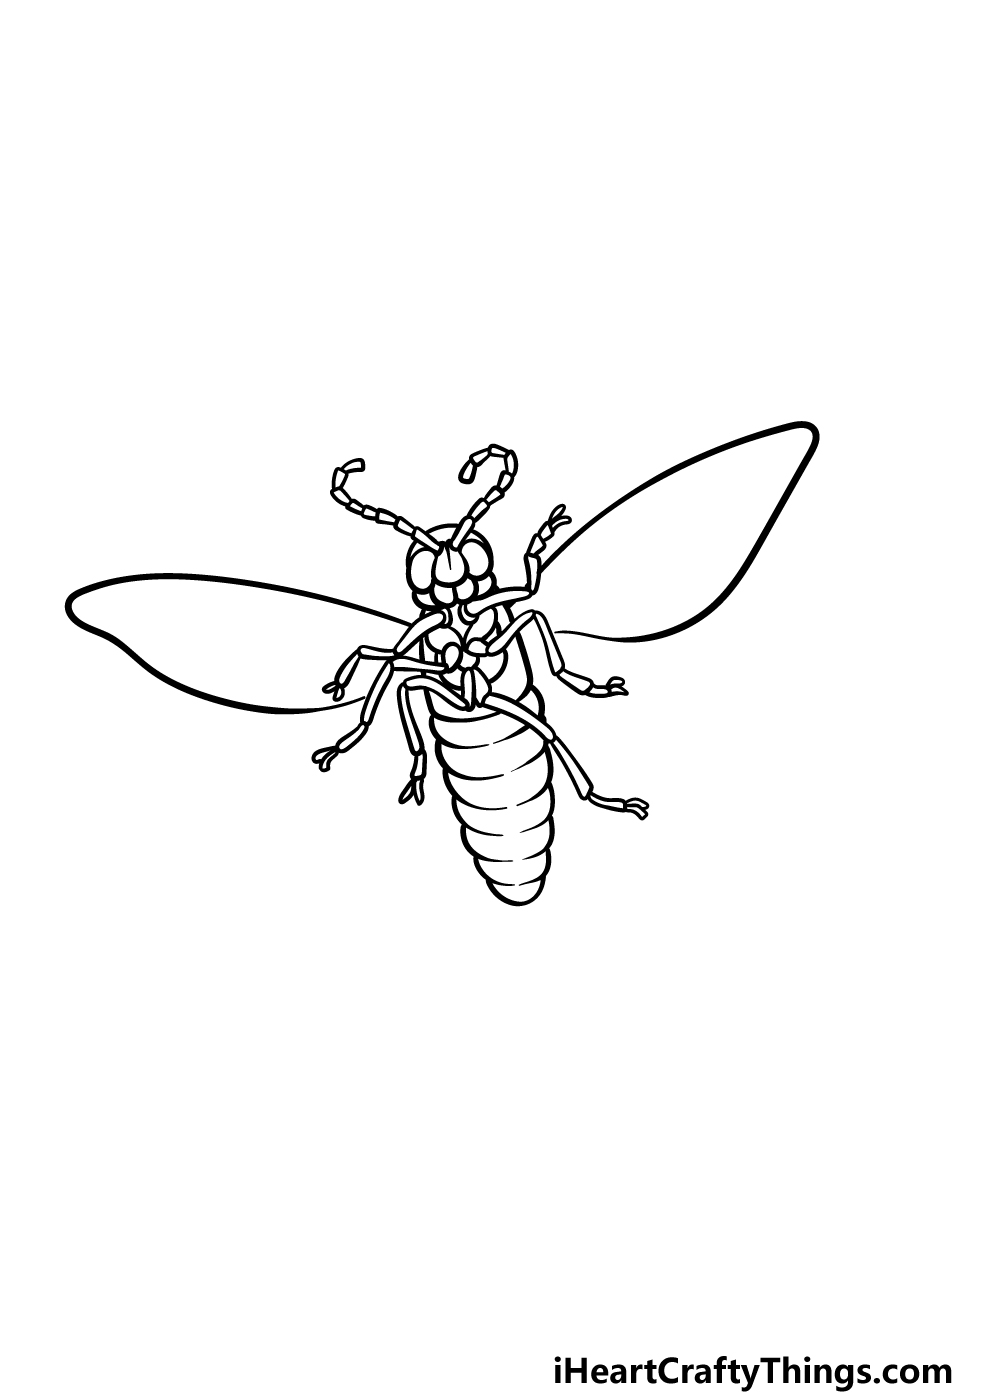 drawing a firefly step 3